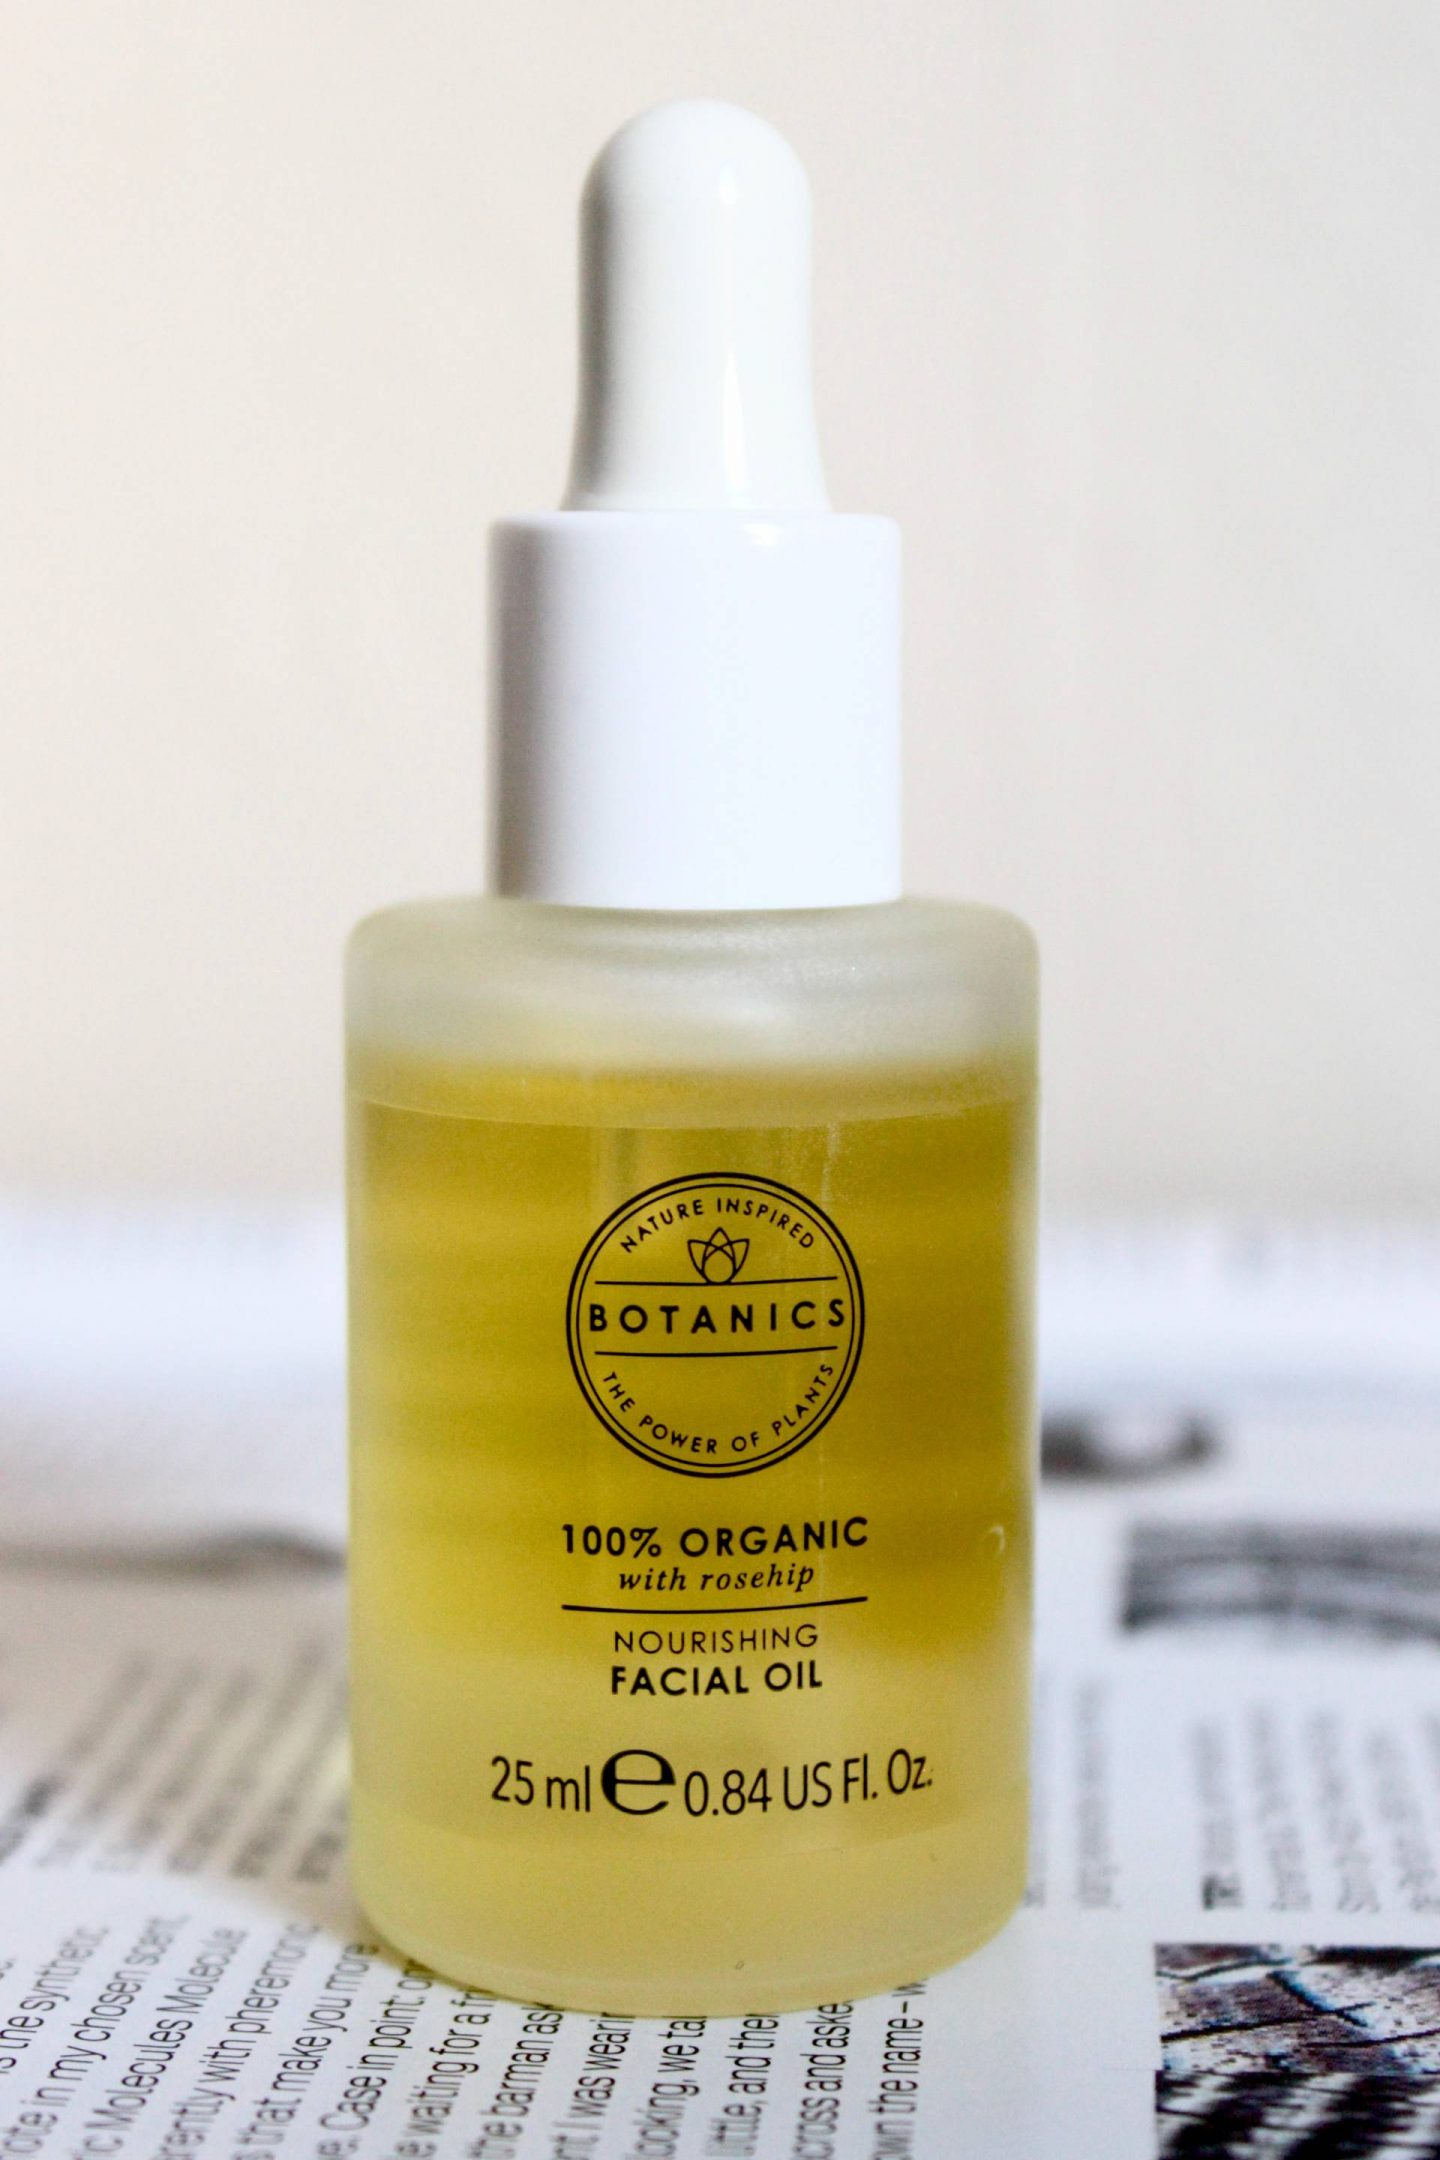 Botanics Nourishing Facial Oil